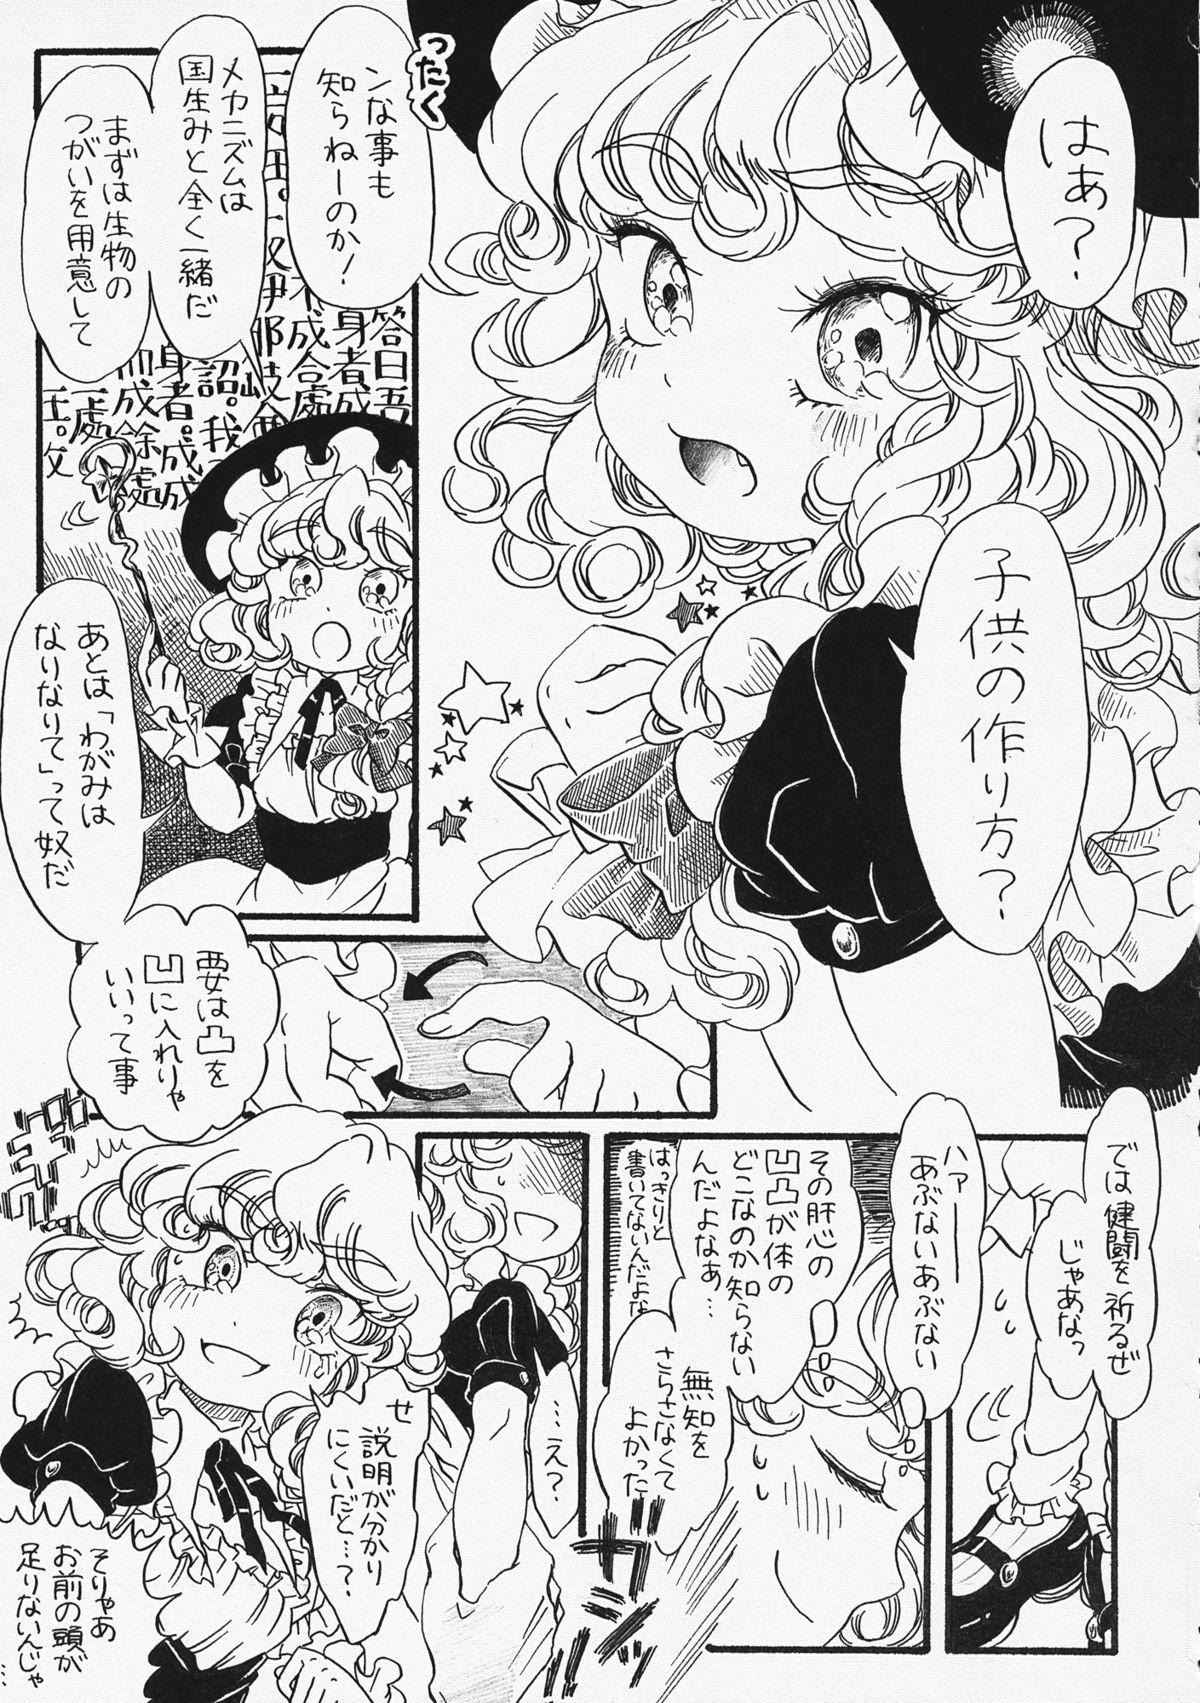 Touhou Muchi Shichu Goudou - Toho joint magazine sex in the ignorant situations 34